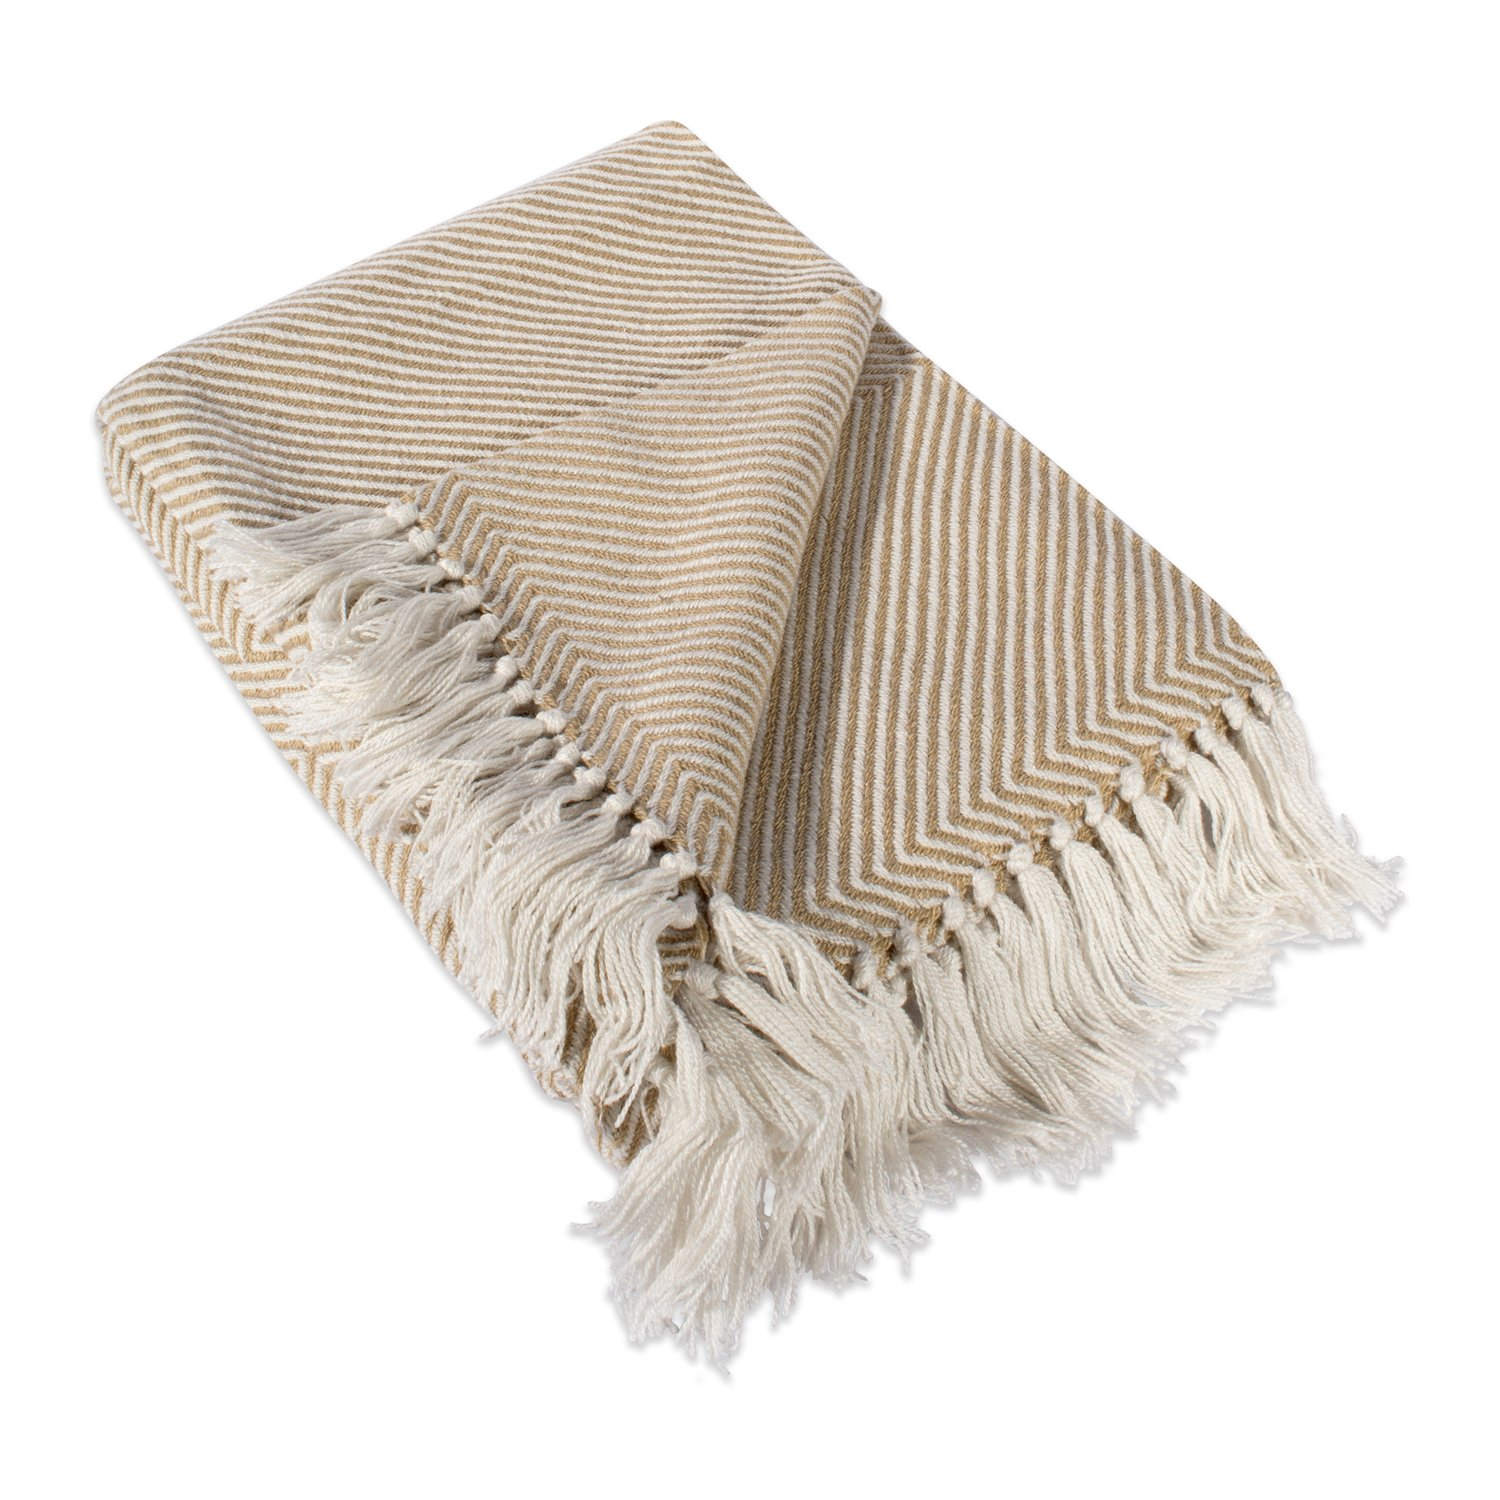 DII Home Essential Chevron Luxury Throw for Indoor/Outdoor Use, Camping, BBQ's, Beaches, Everyday Blanket, 48x67'', Taupe